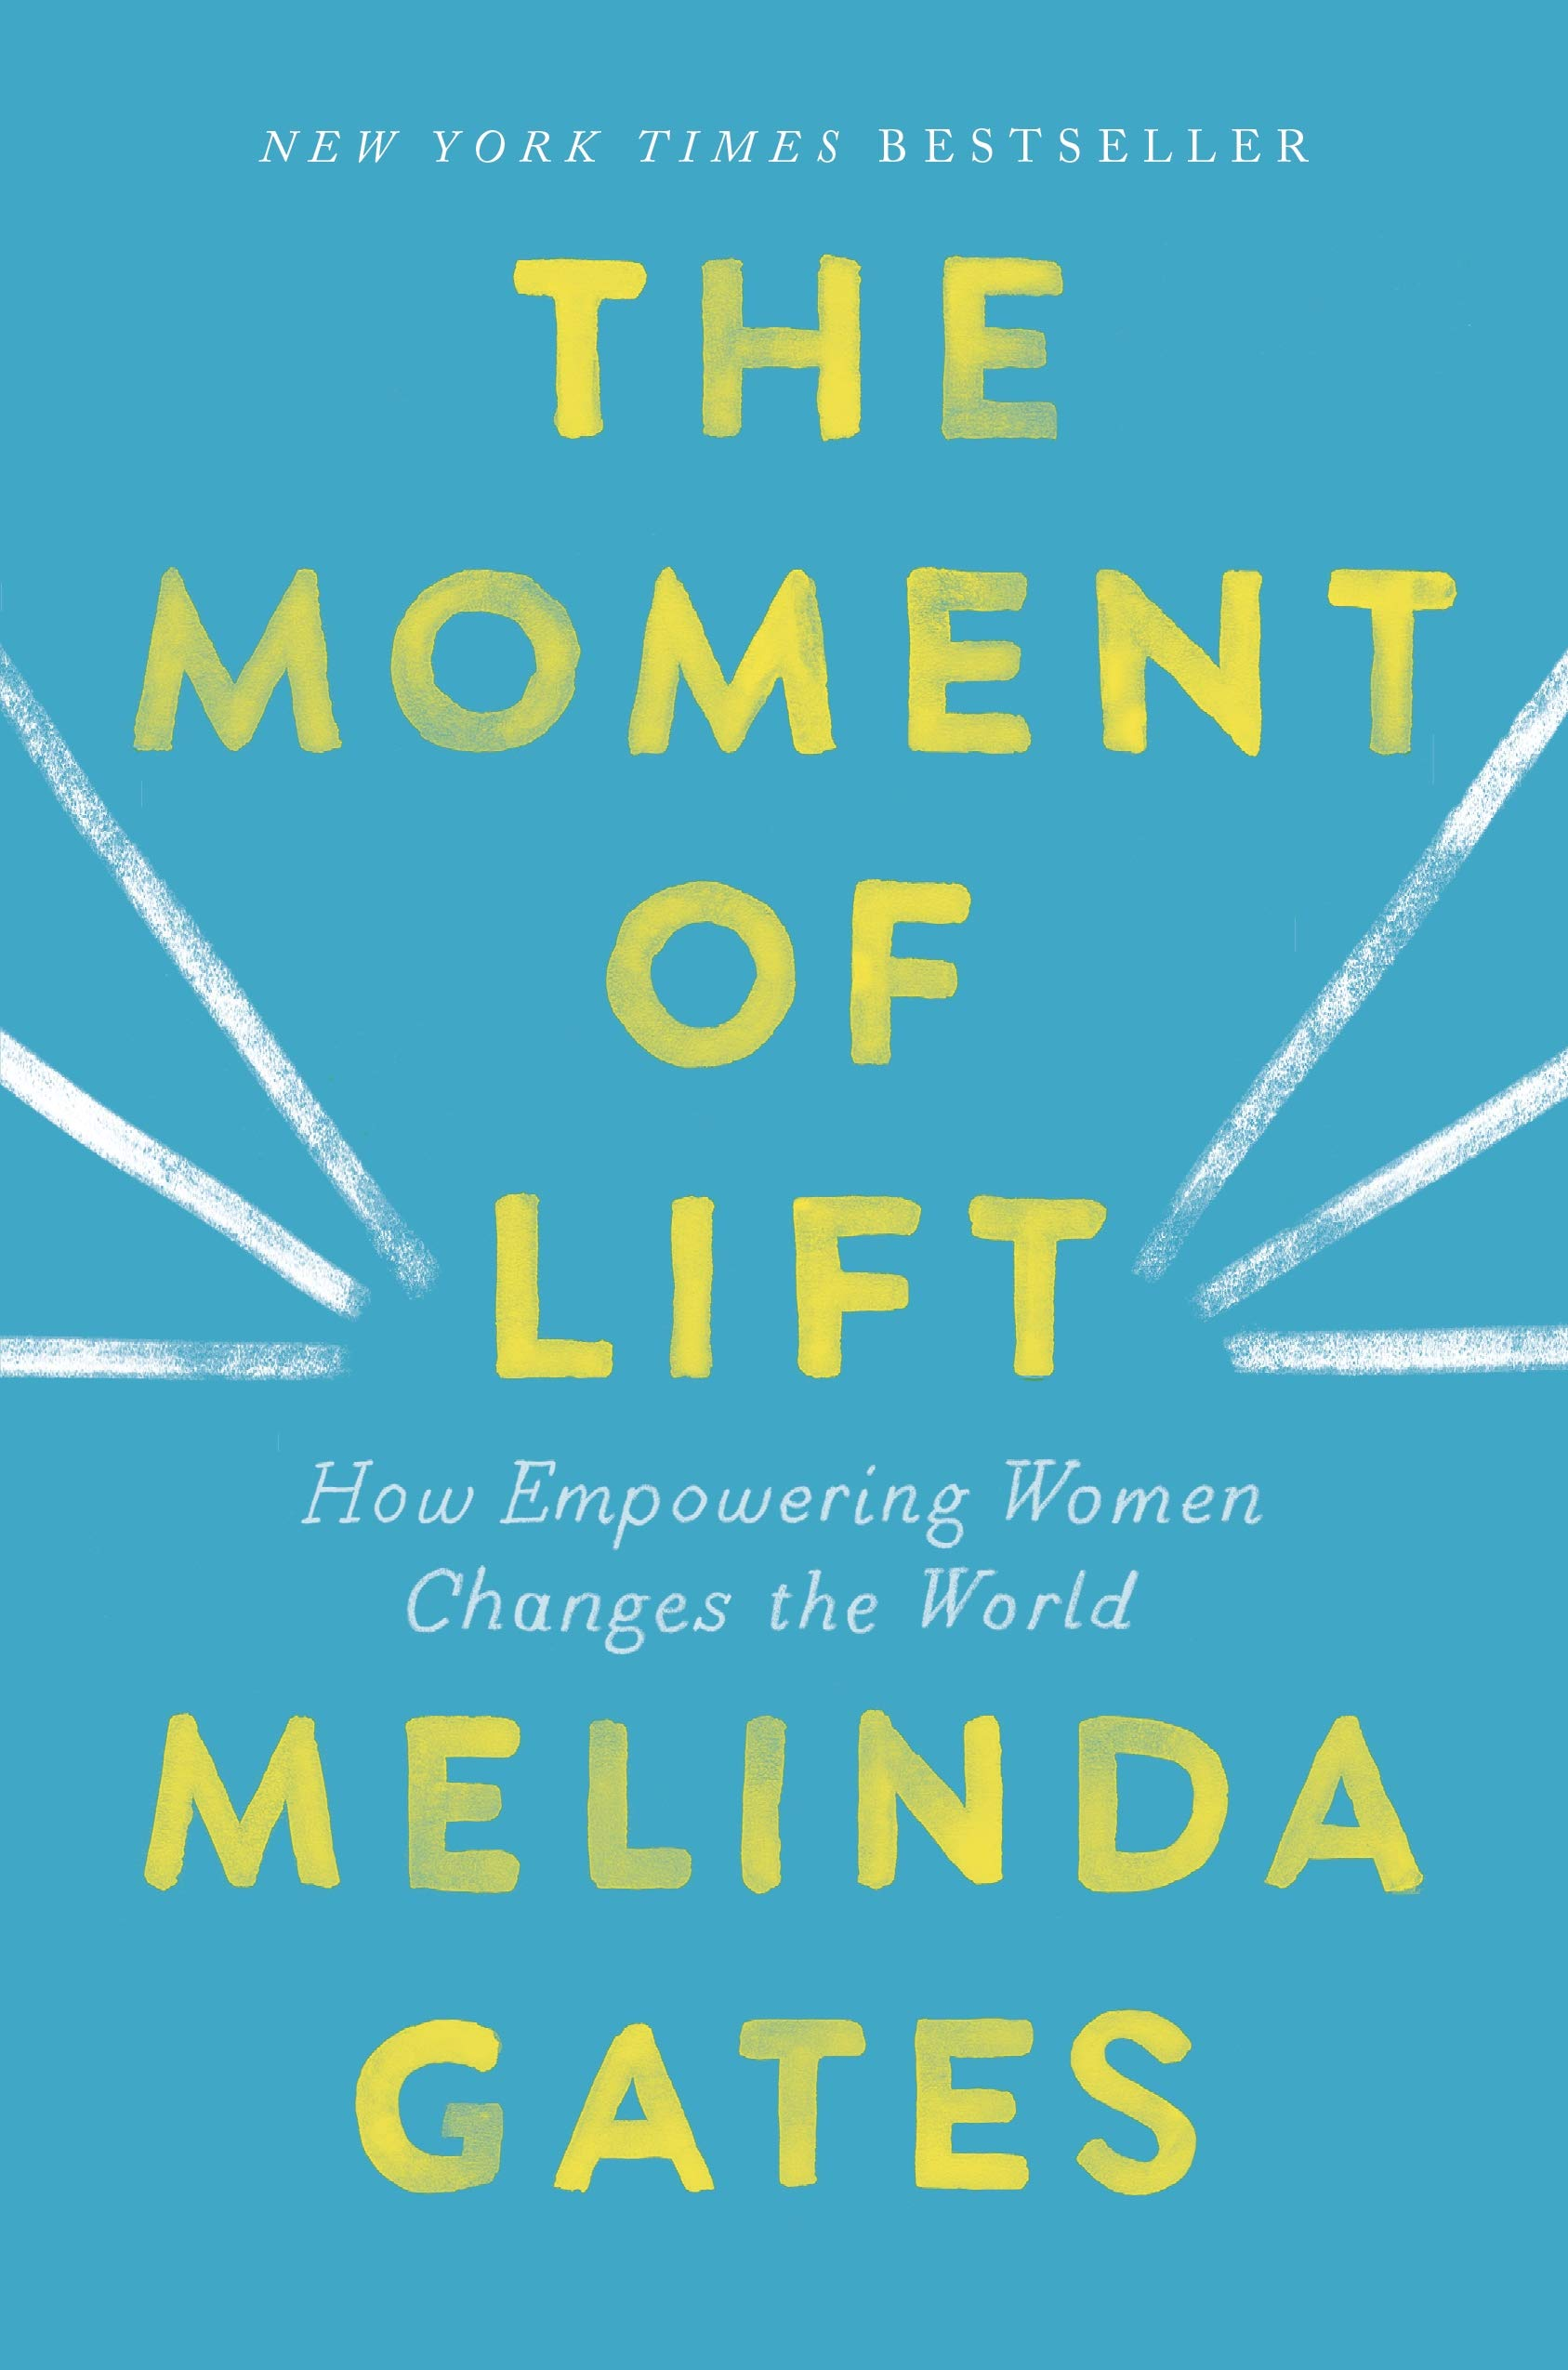 The Moment of Lift: How Empowering Women Changes the World by Flatiron Books